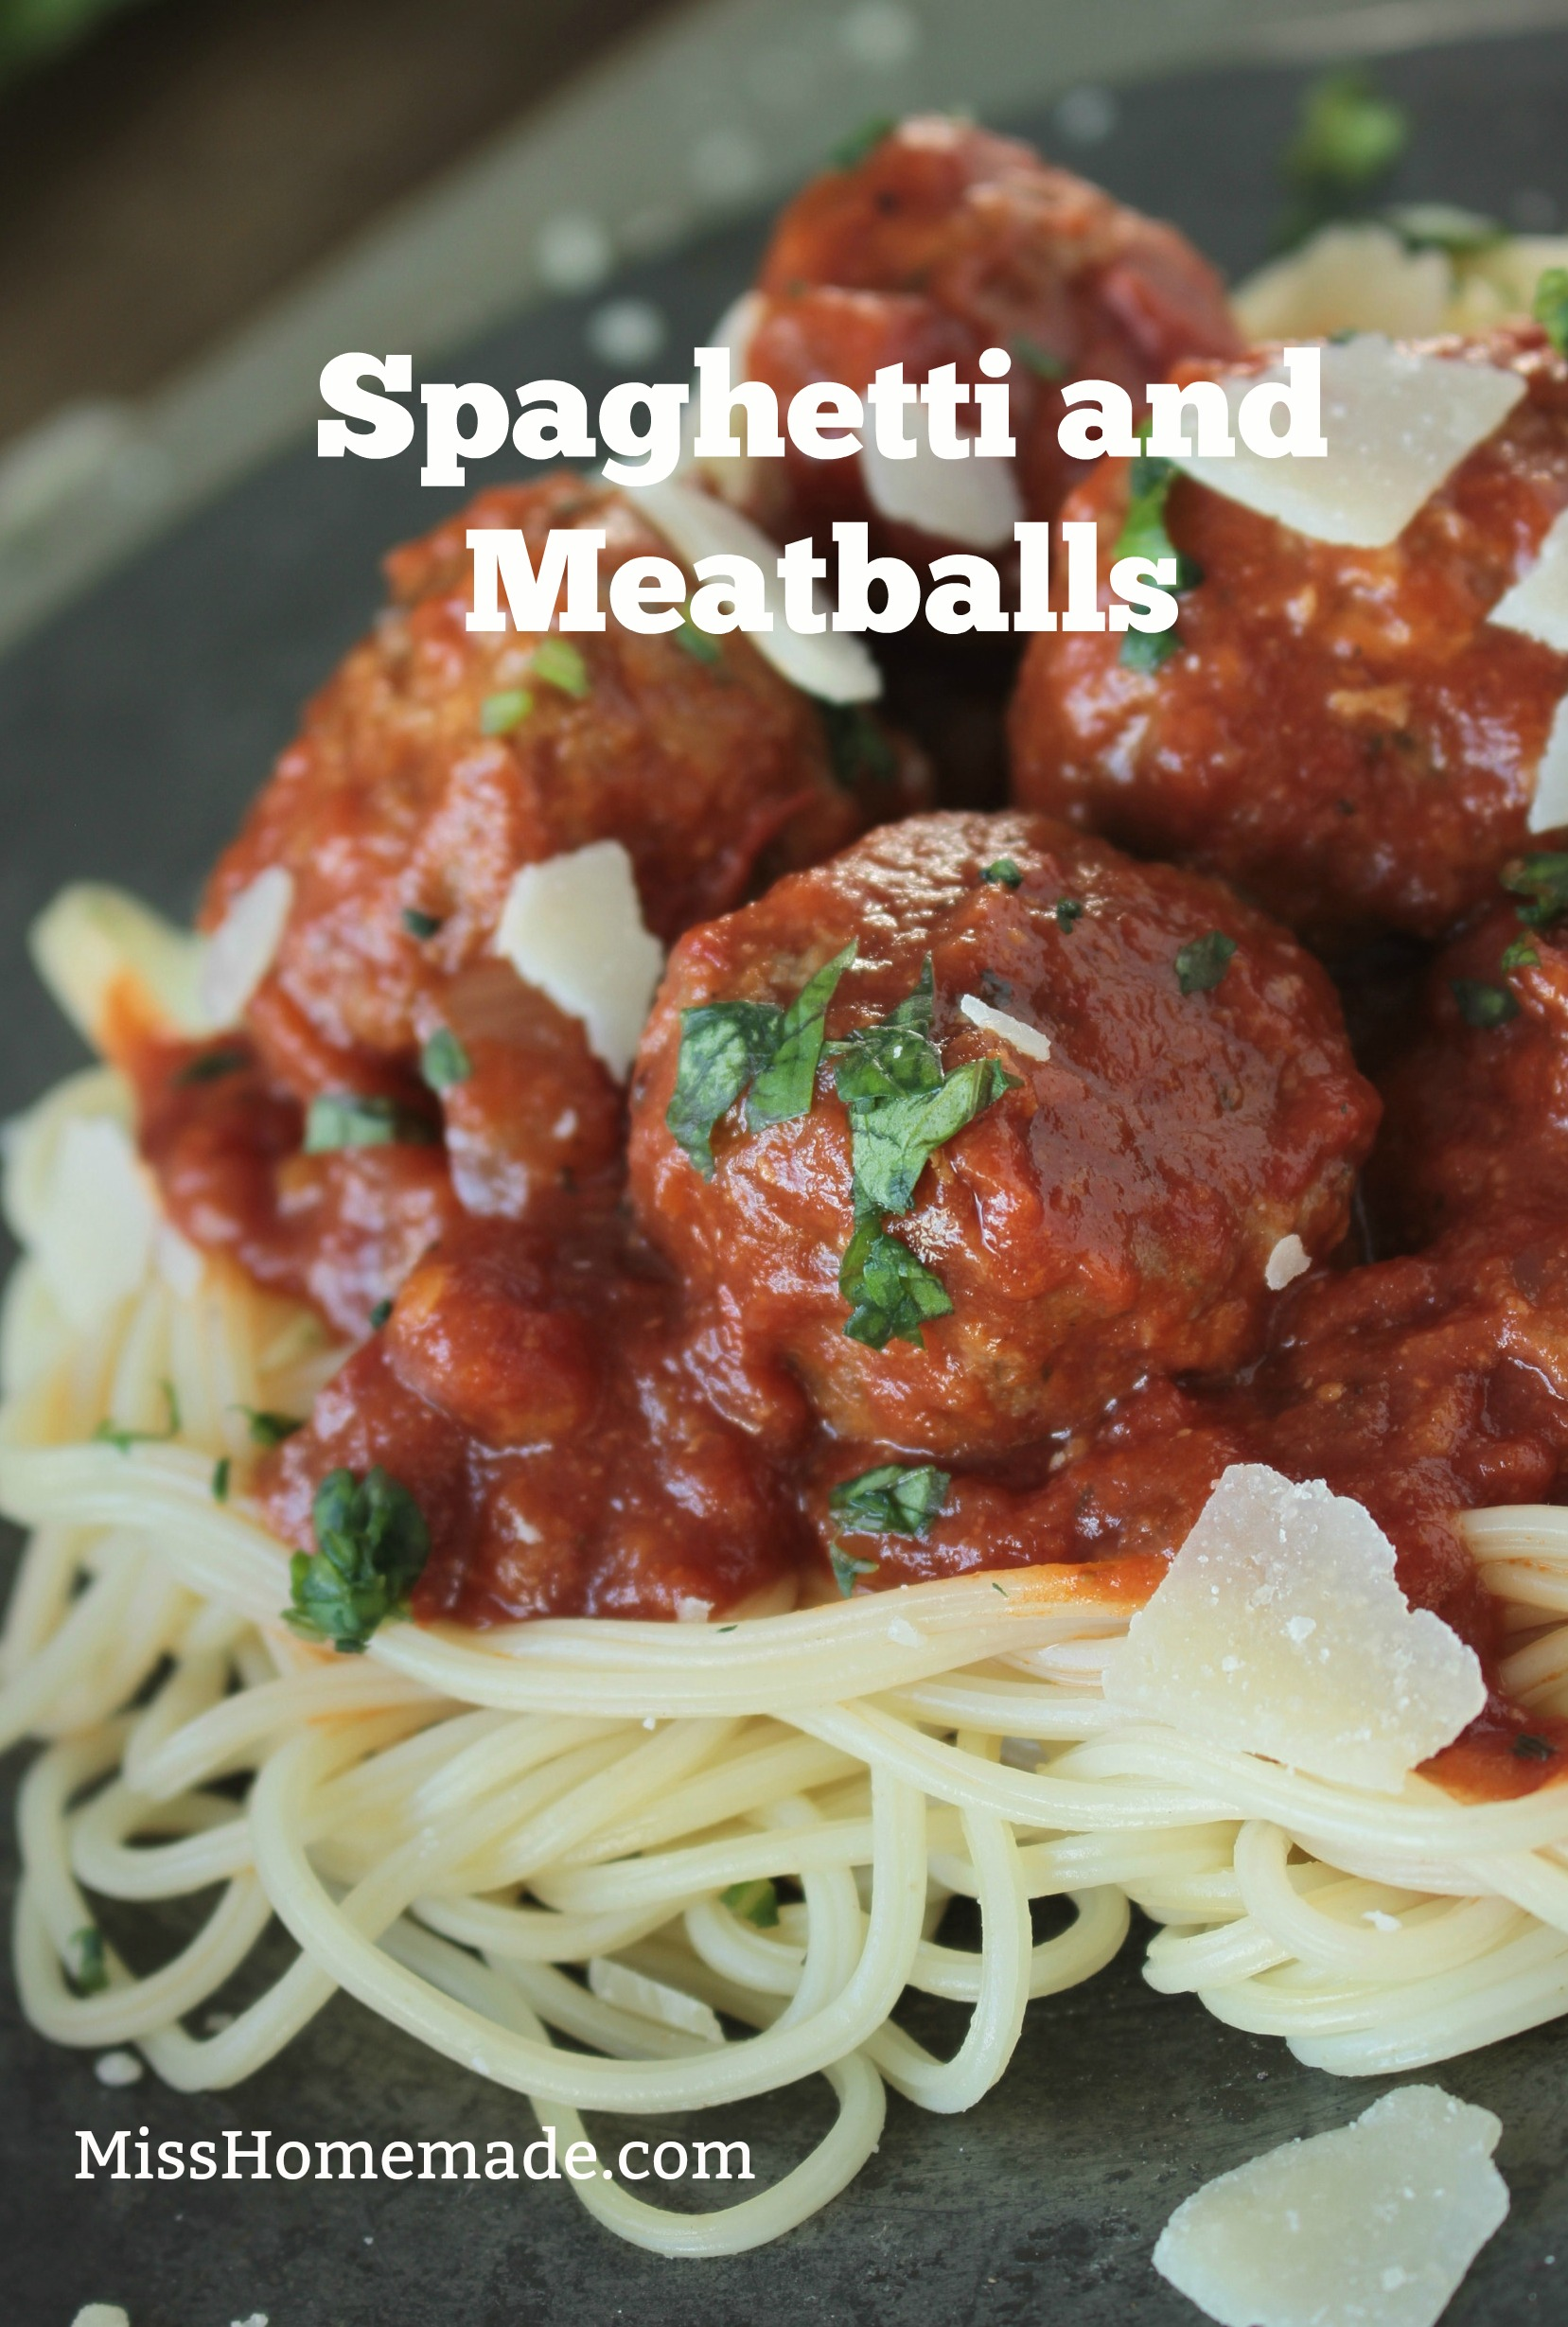 Best Spaghetti and Meatball Recipe from Scratch